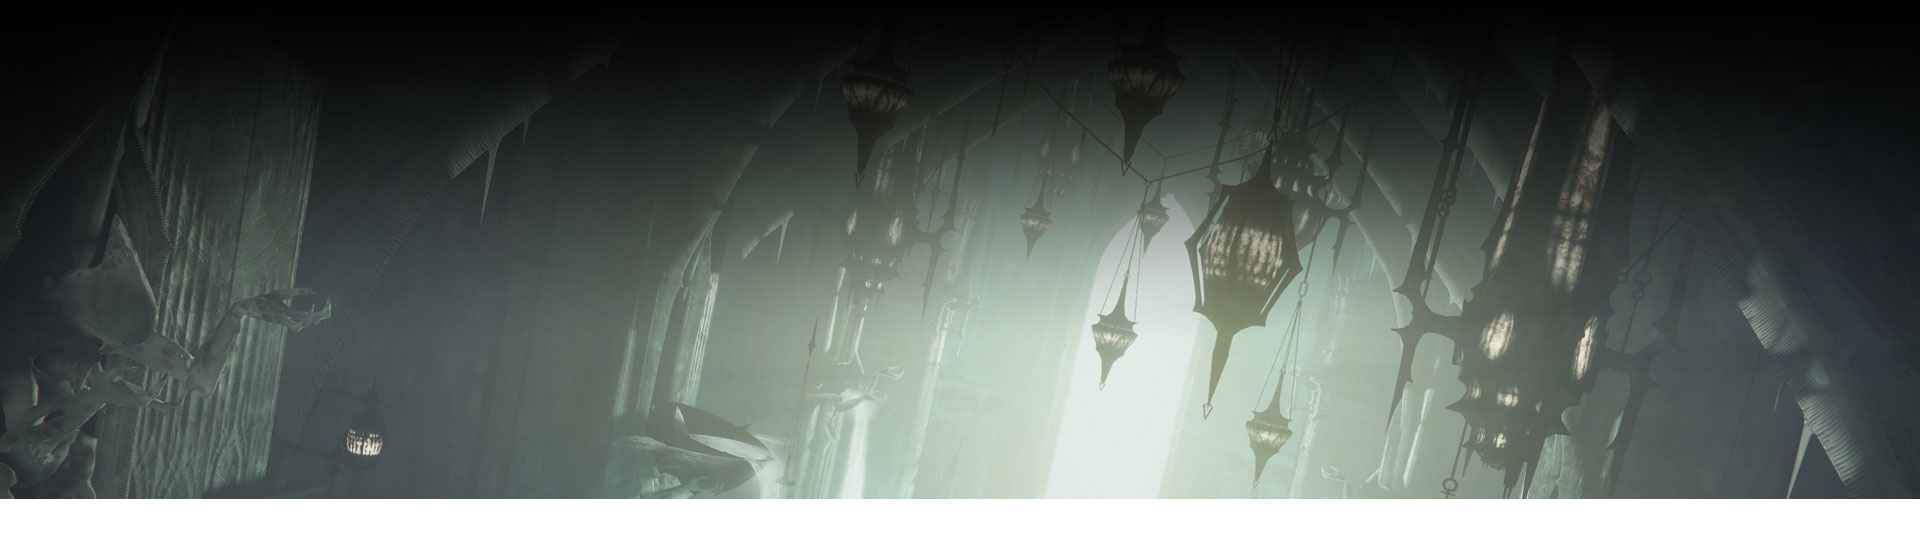 Many lanterns hanging from cathedral-style ceiling